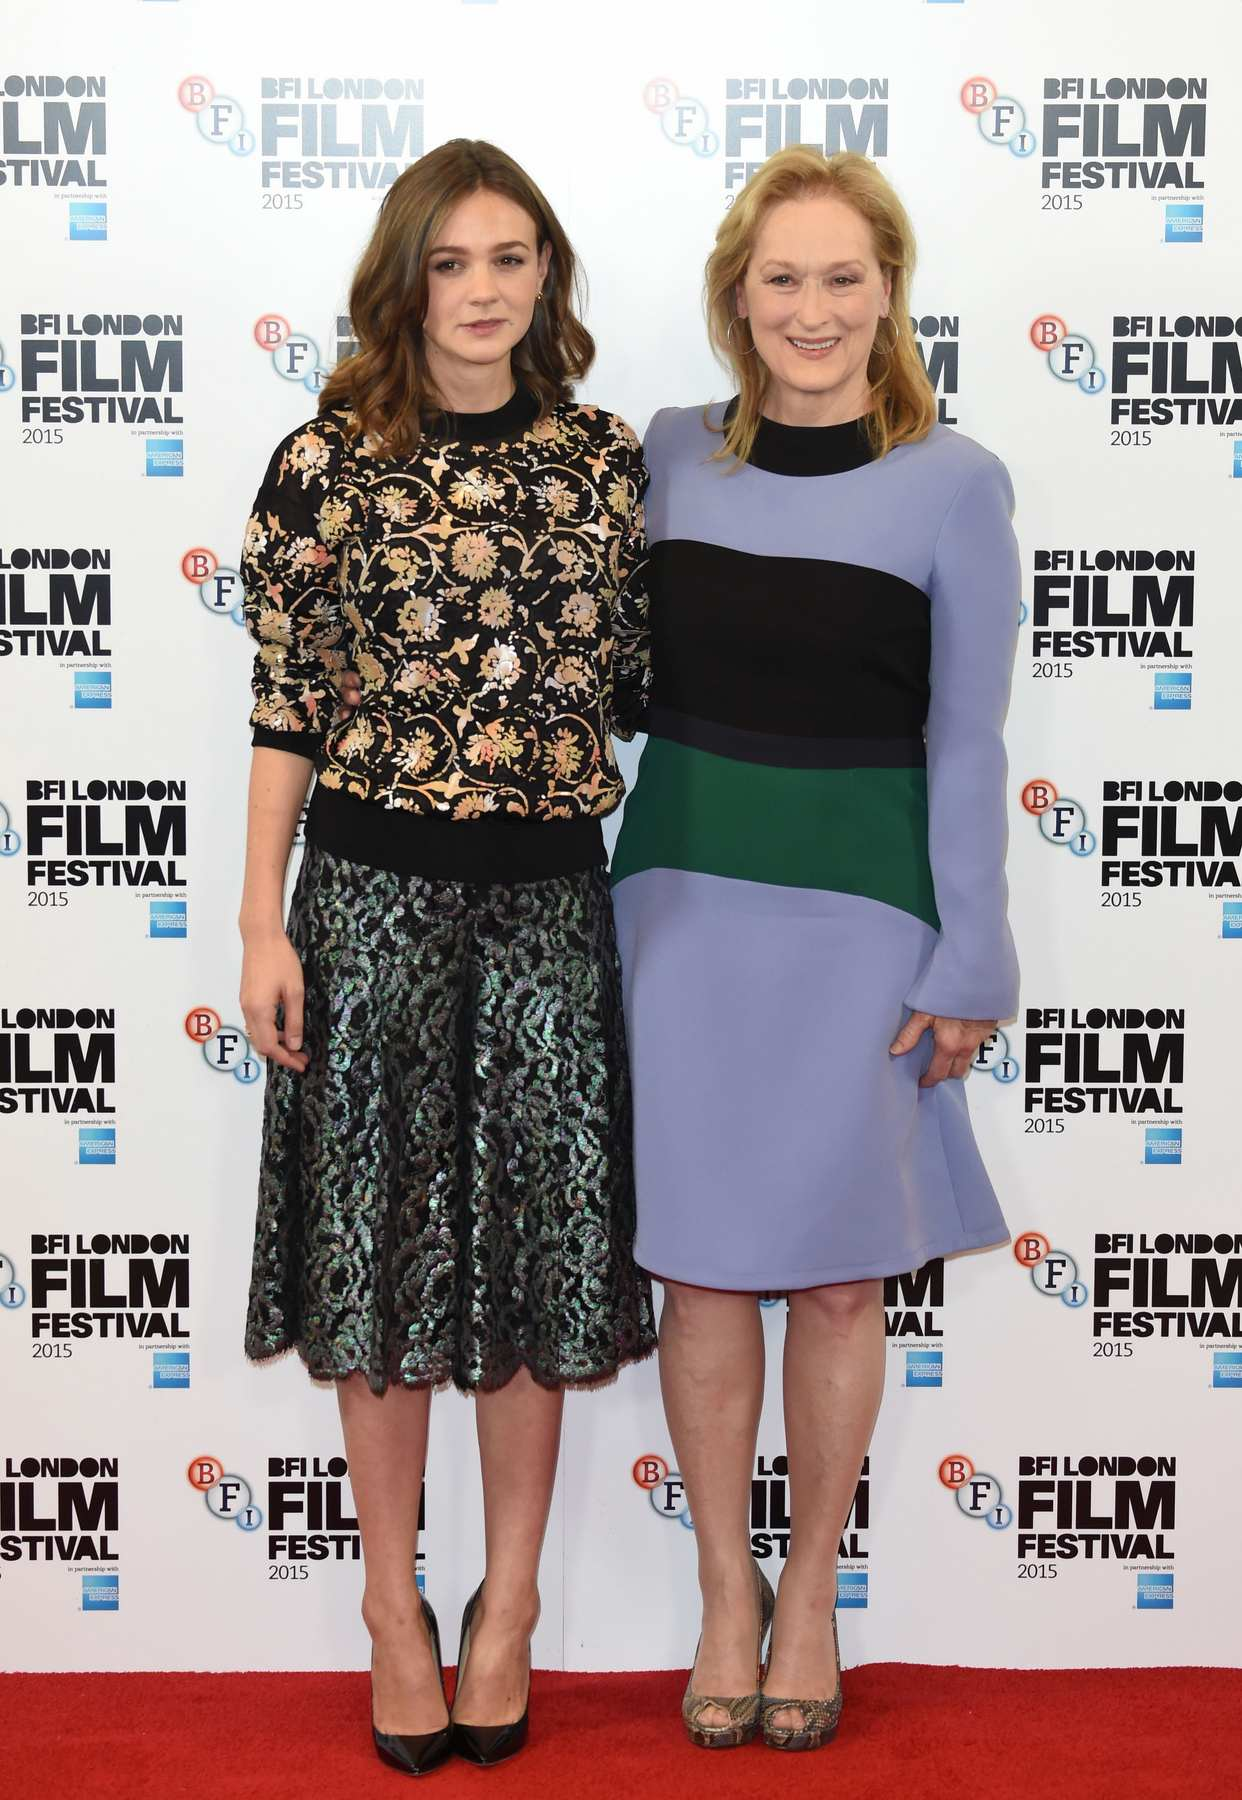 Carey Mulligan and Meryl Streep at BFI LFF Suffragette Premiere and Photocall